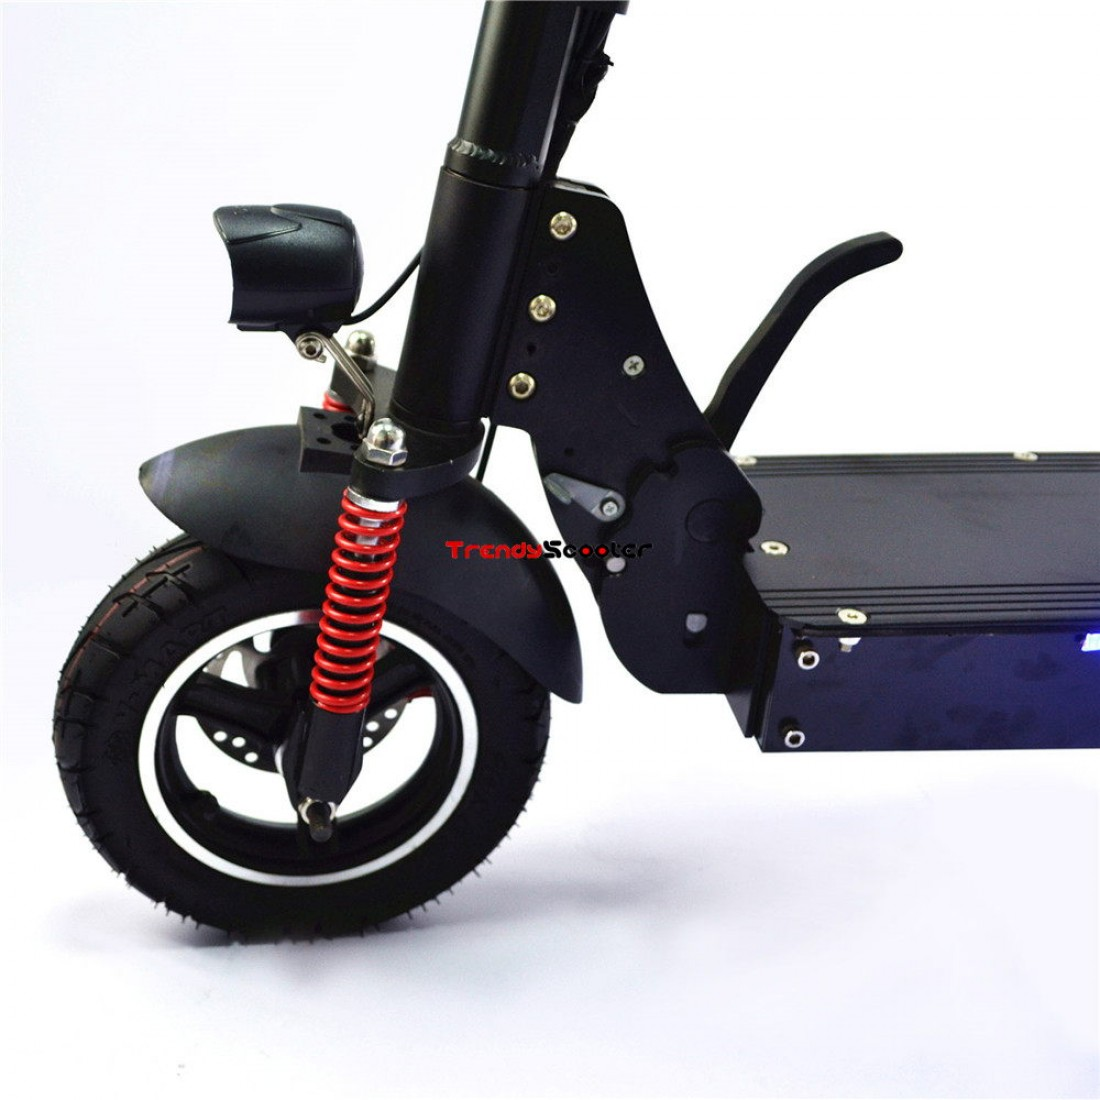 rhino-smart-electric-scooter-for-sale-1100×1100